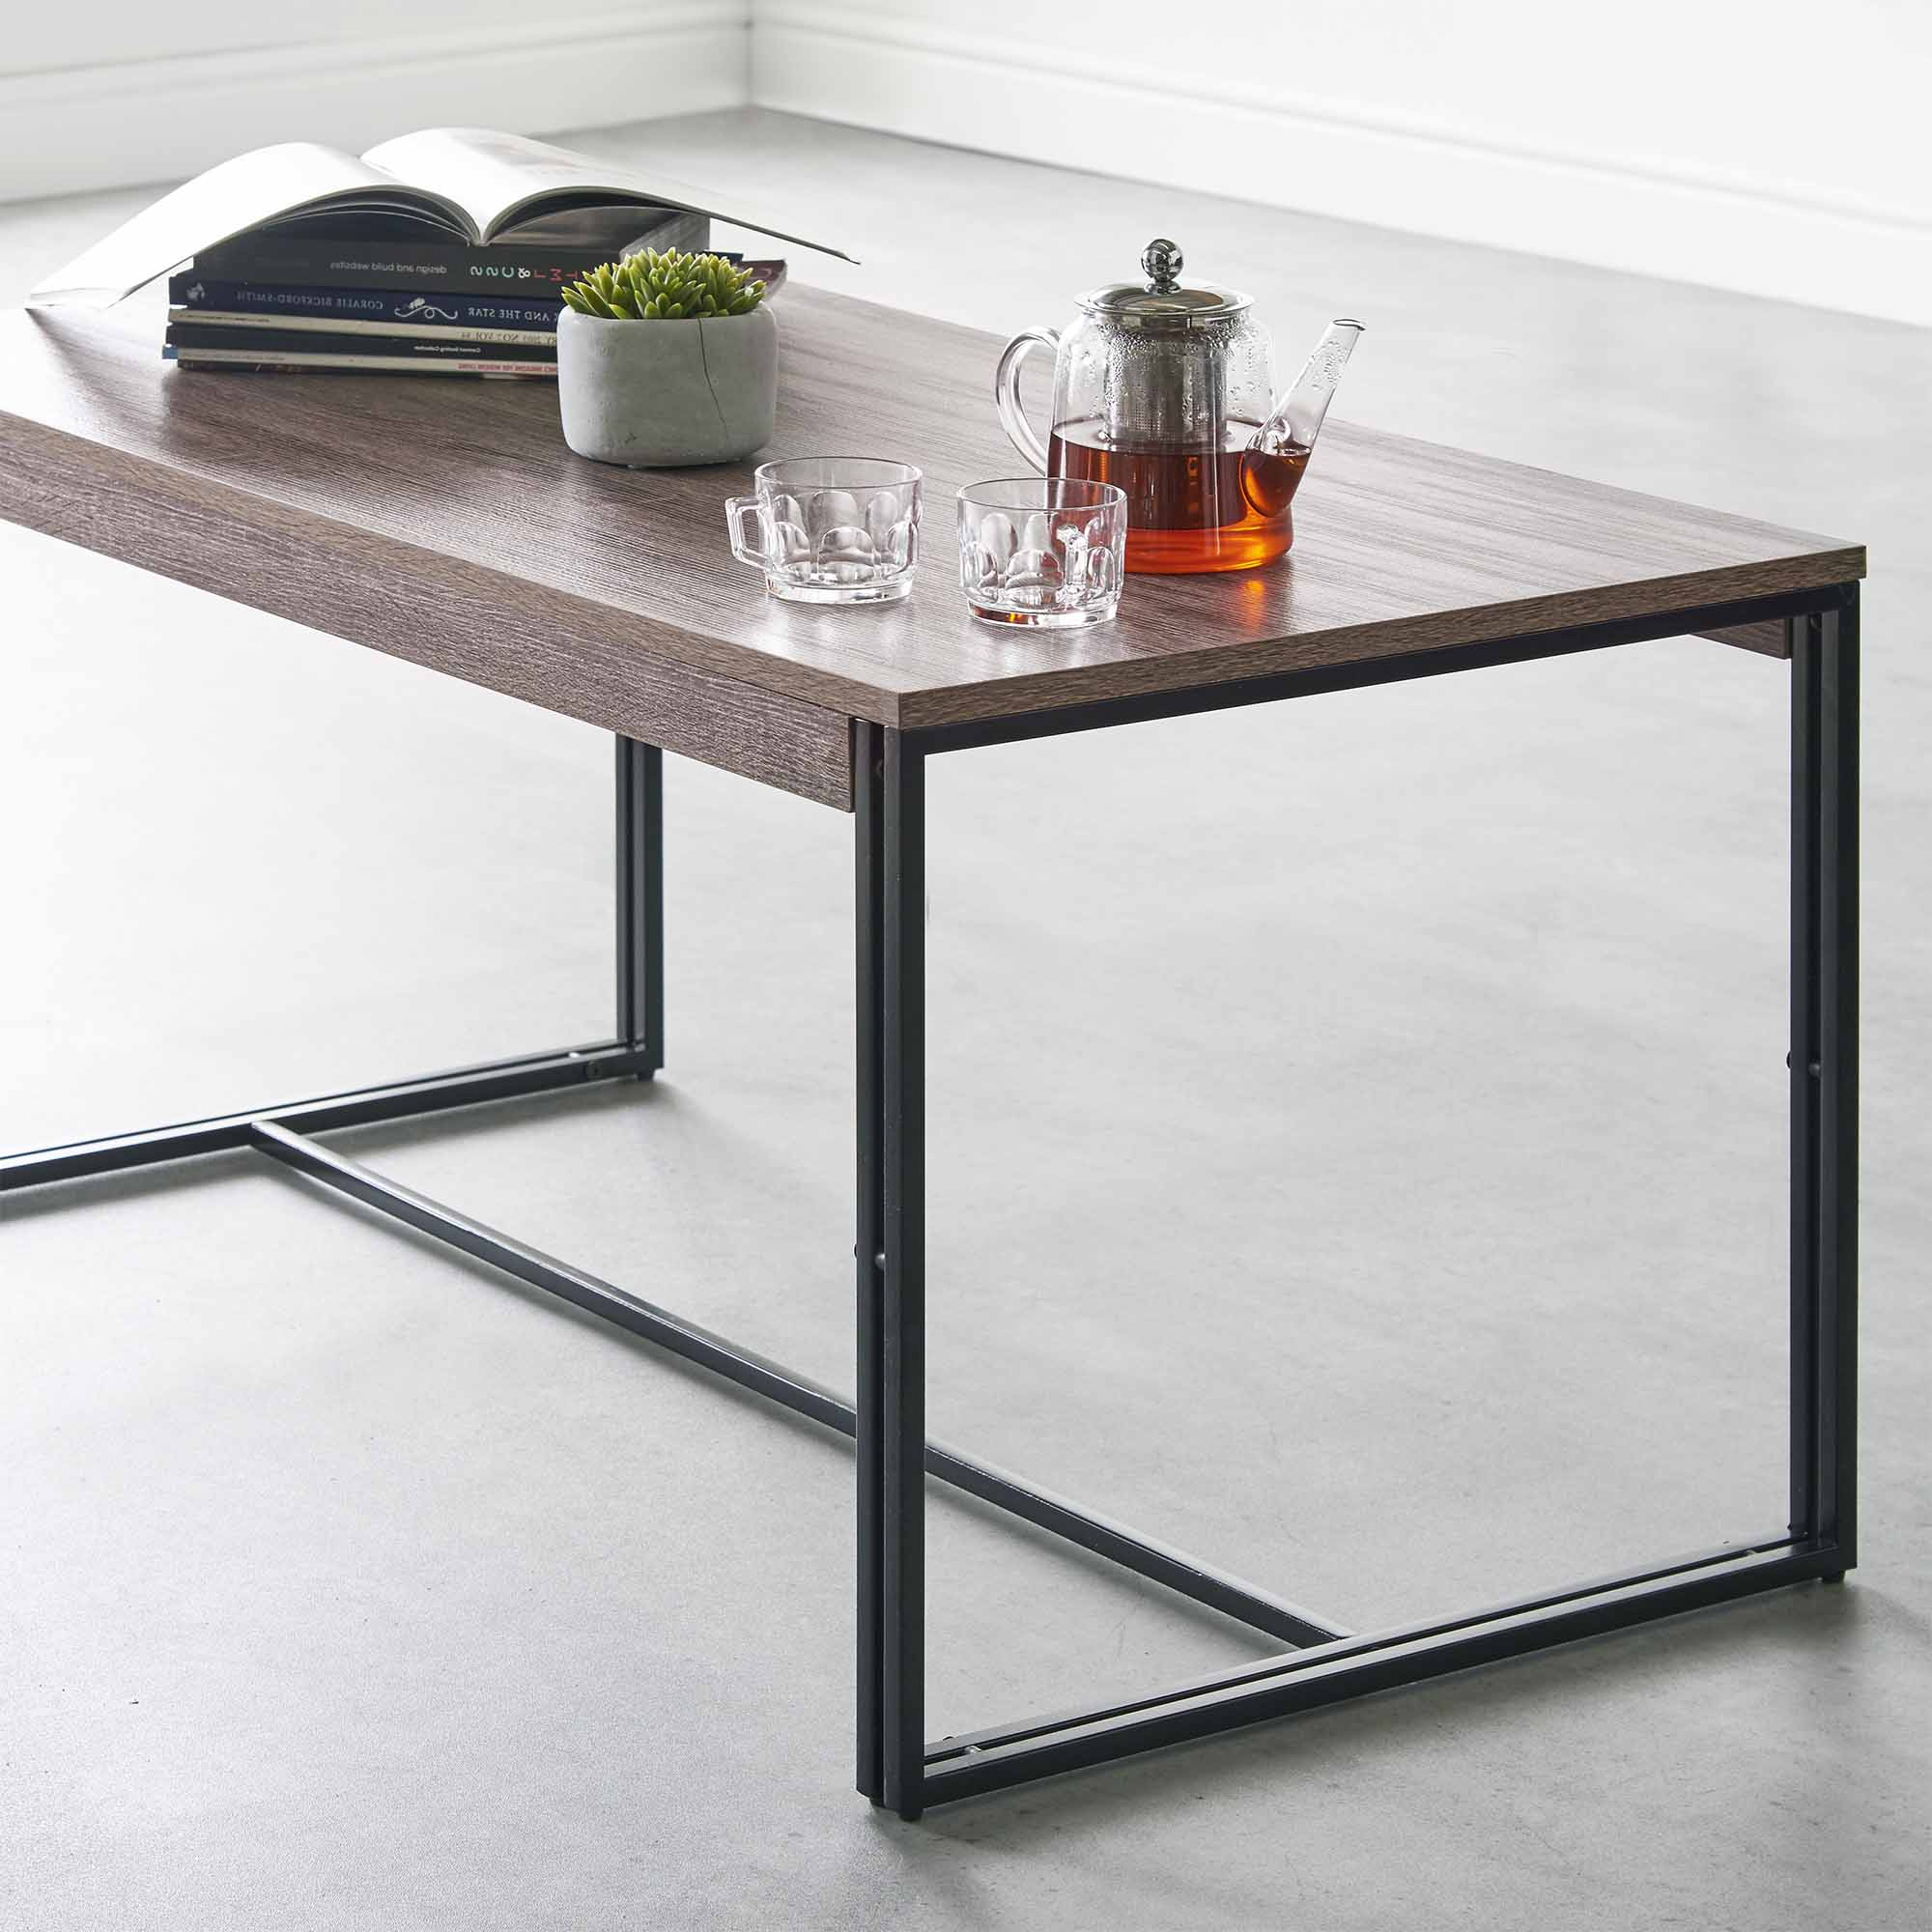 Fashionable Modern Rustic Coffee Tables Intended For Vonhaus Rustic Coffee Table Modern Industrial Urban Design Living (Gallery 12 of 20)